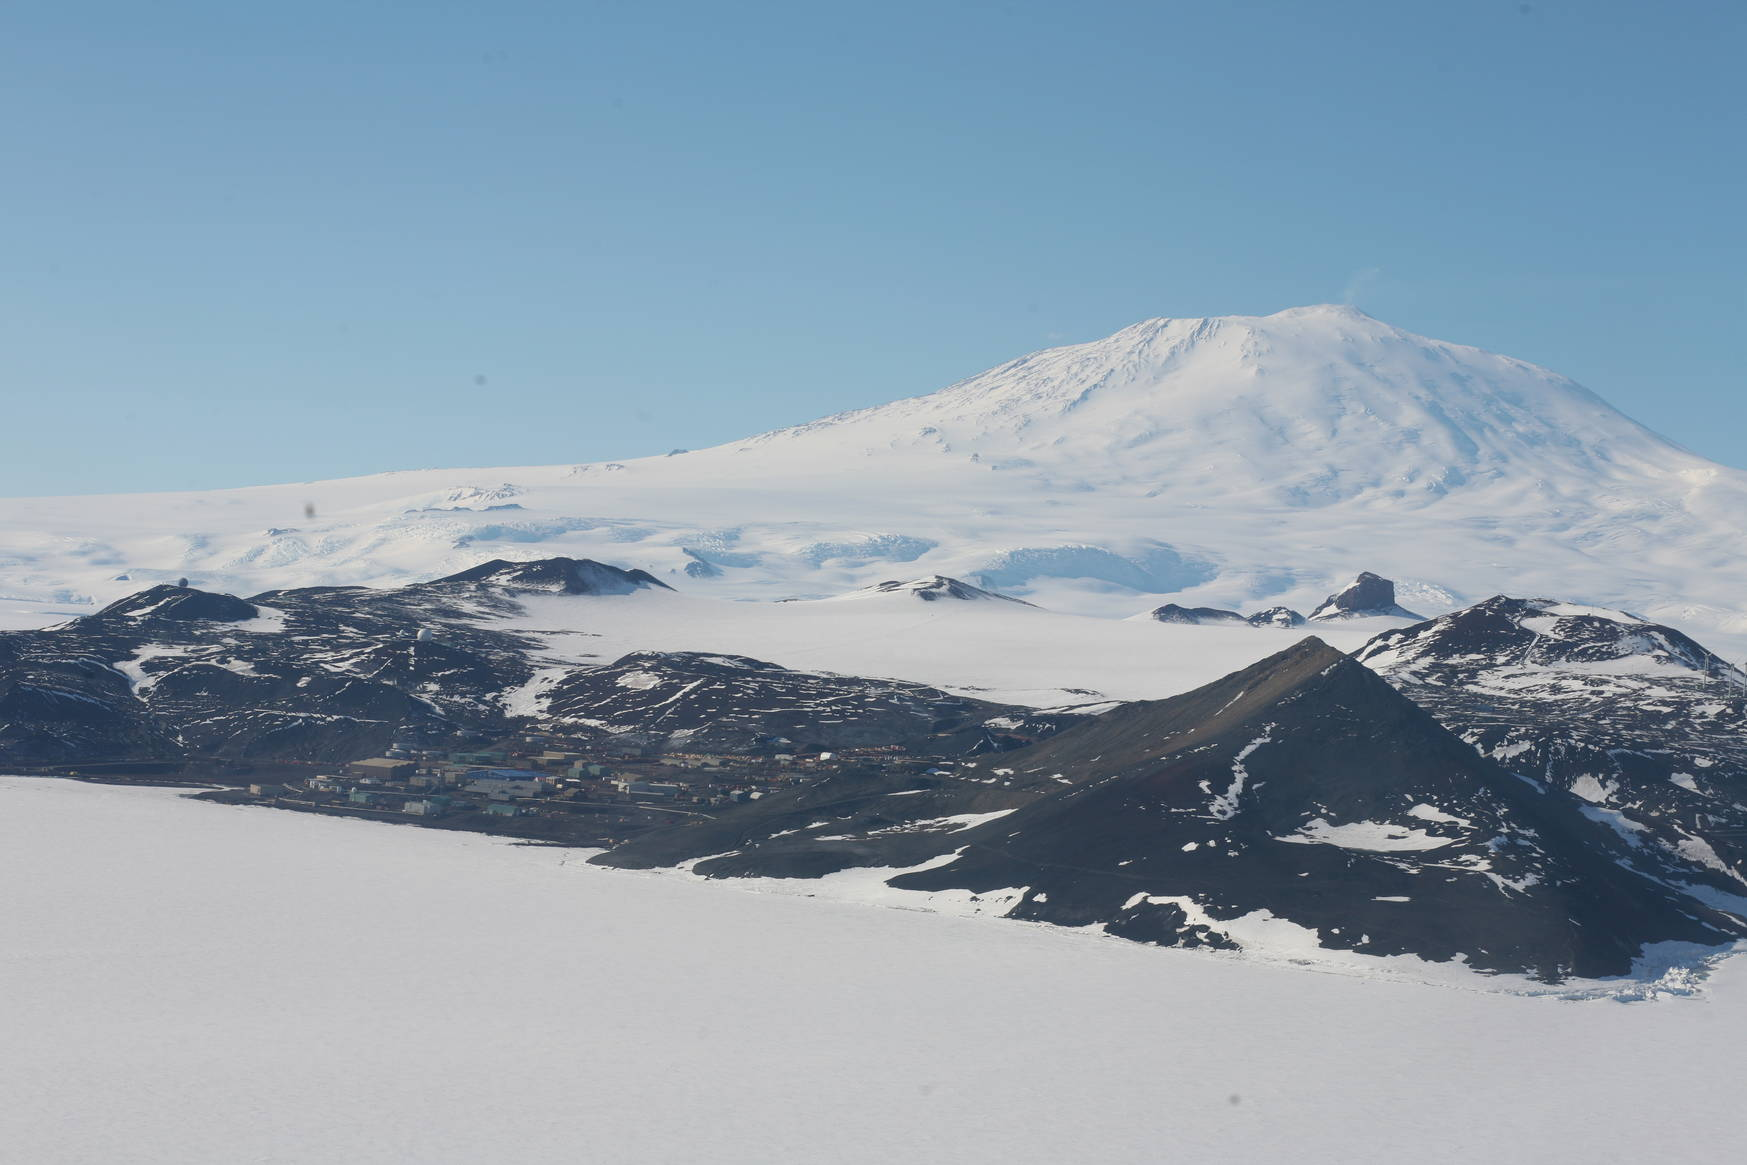 A first view of the McMurdo base: the white mountain in the background is the active volcano Erebus. The hill to the front right is the 'Observation hill'.